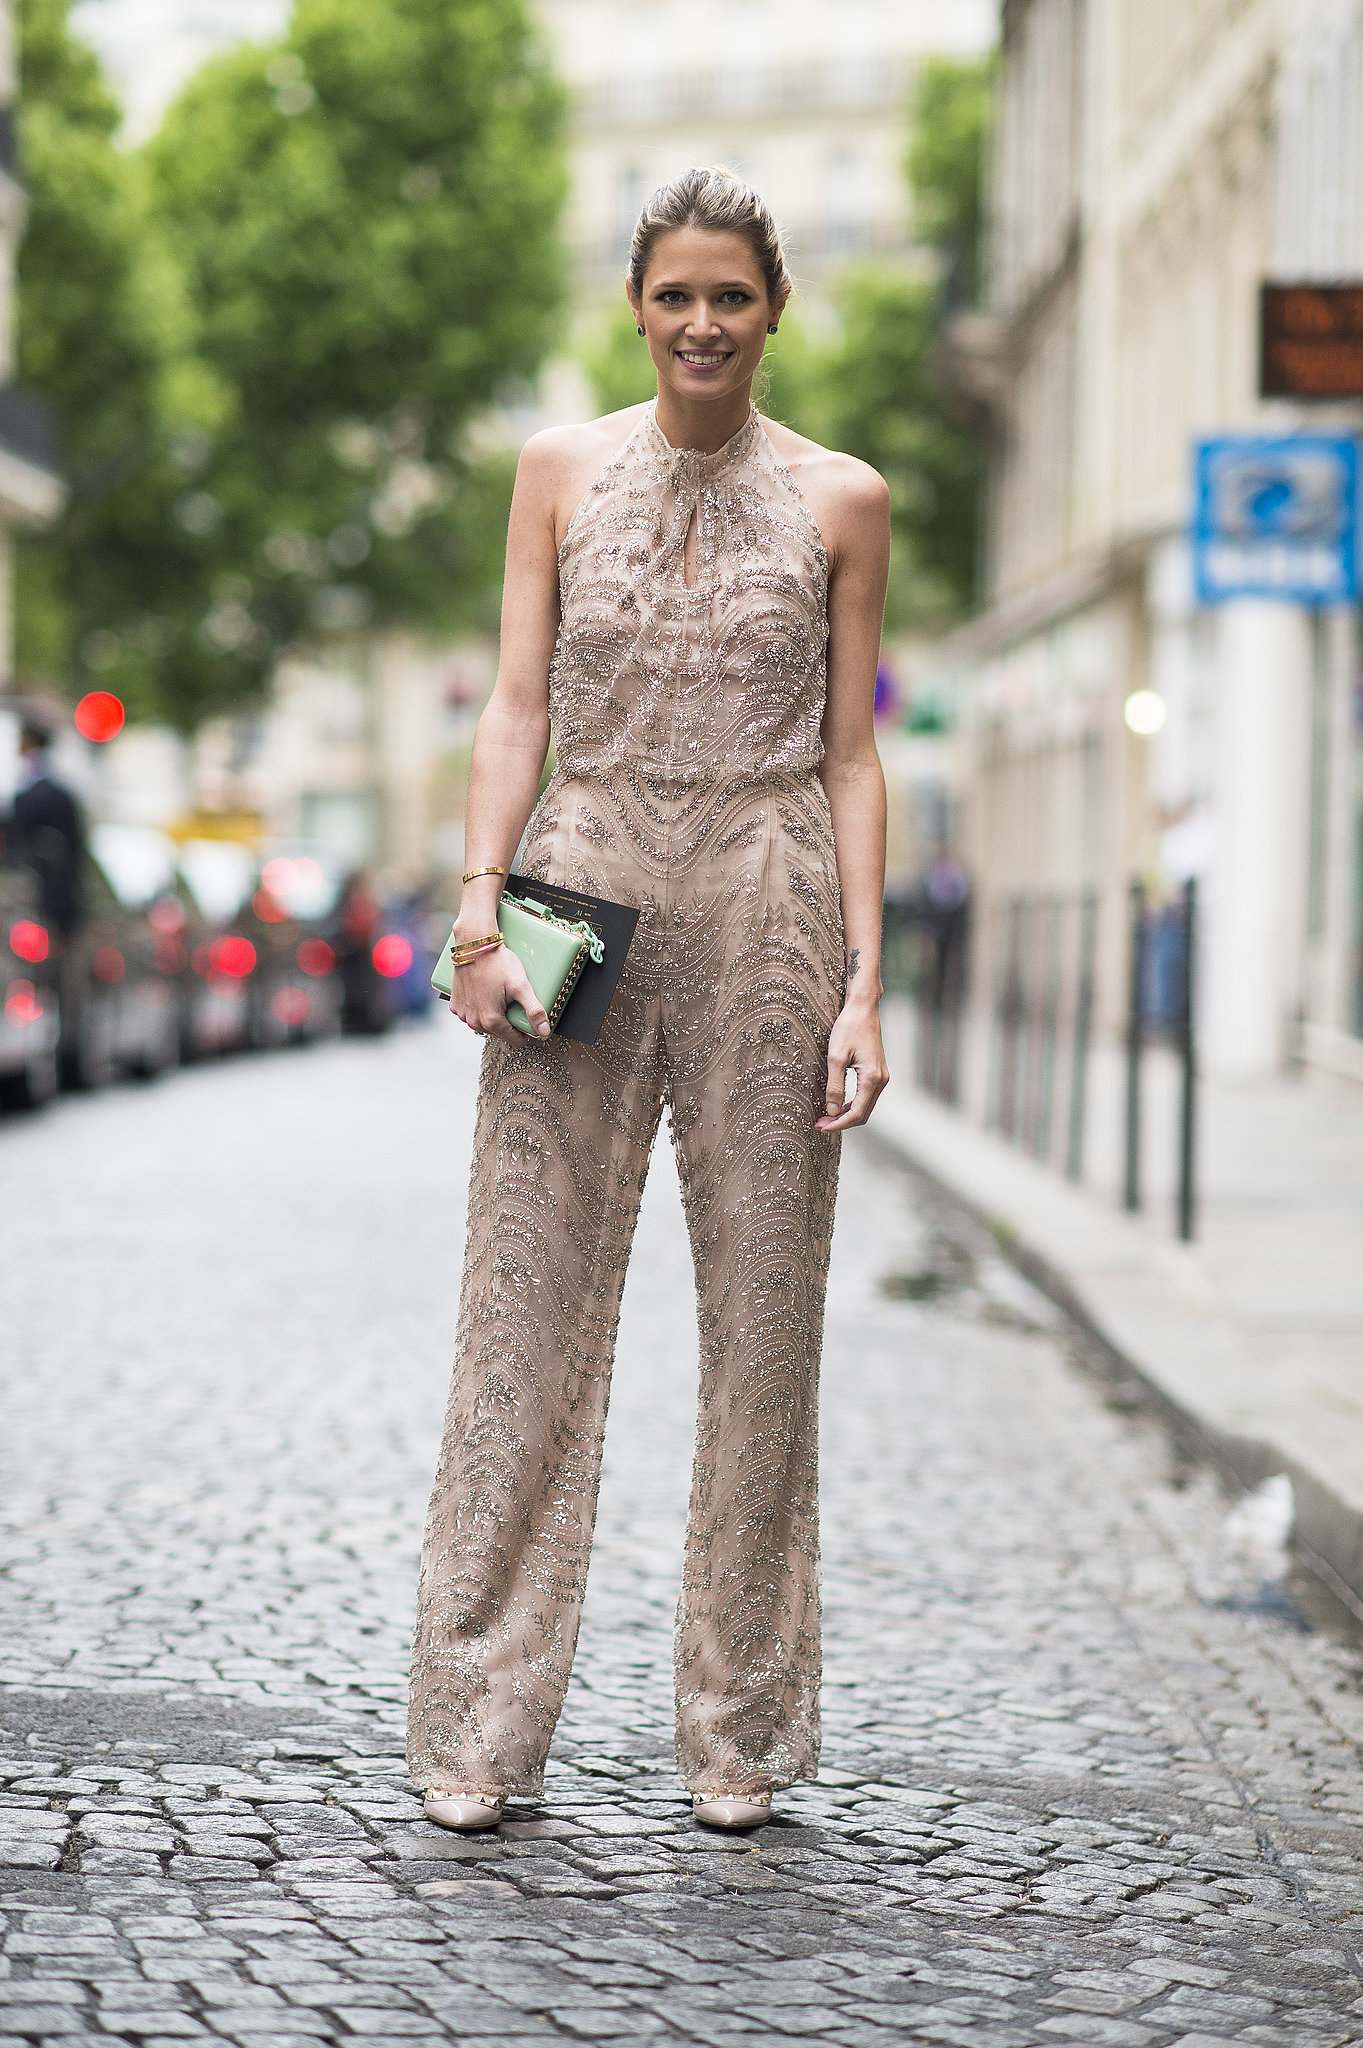 chic-jumpsuit-can-also-responsible-speeding-up-morning